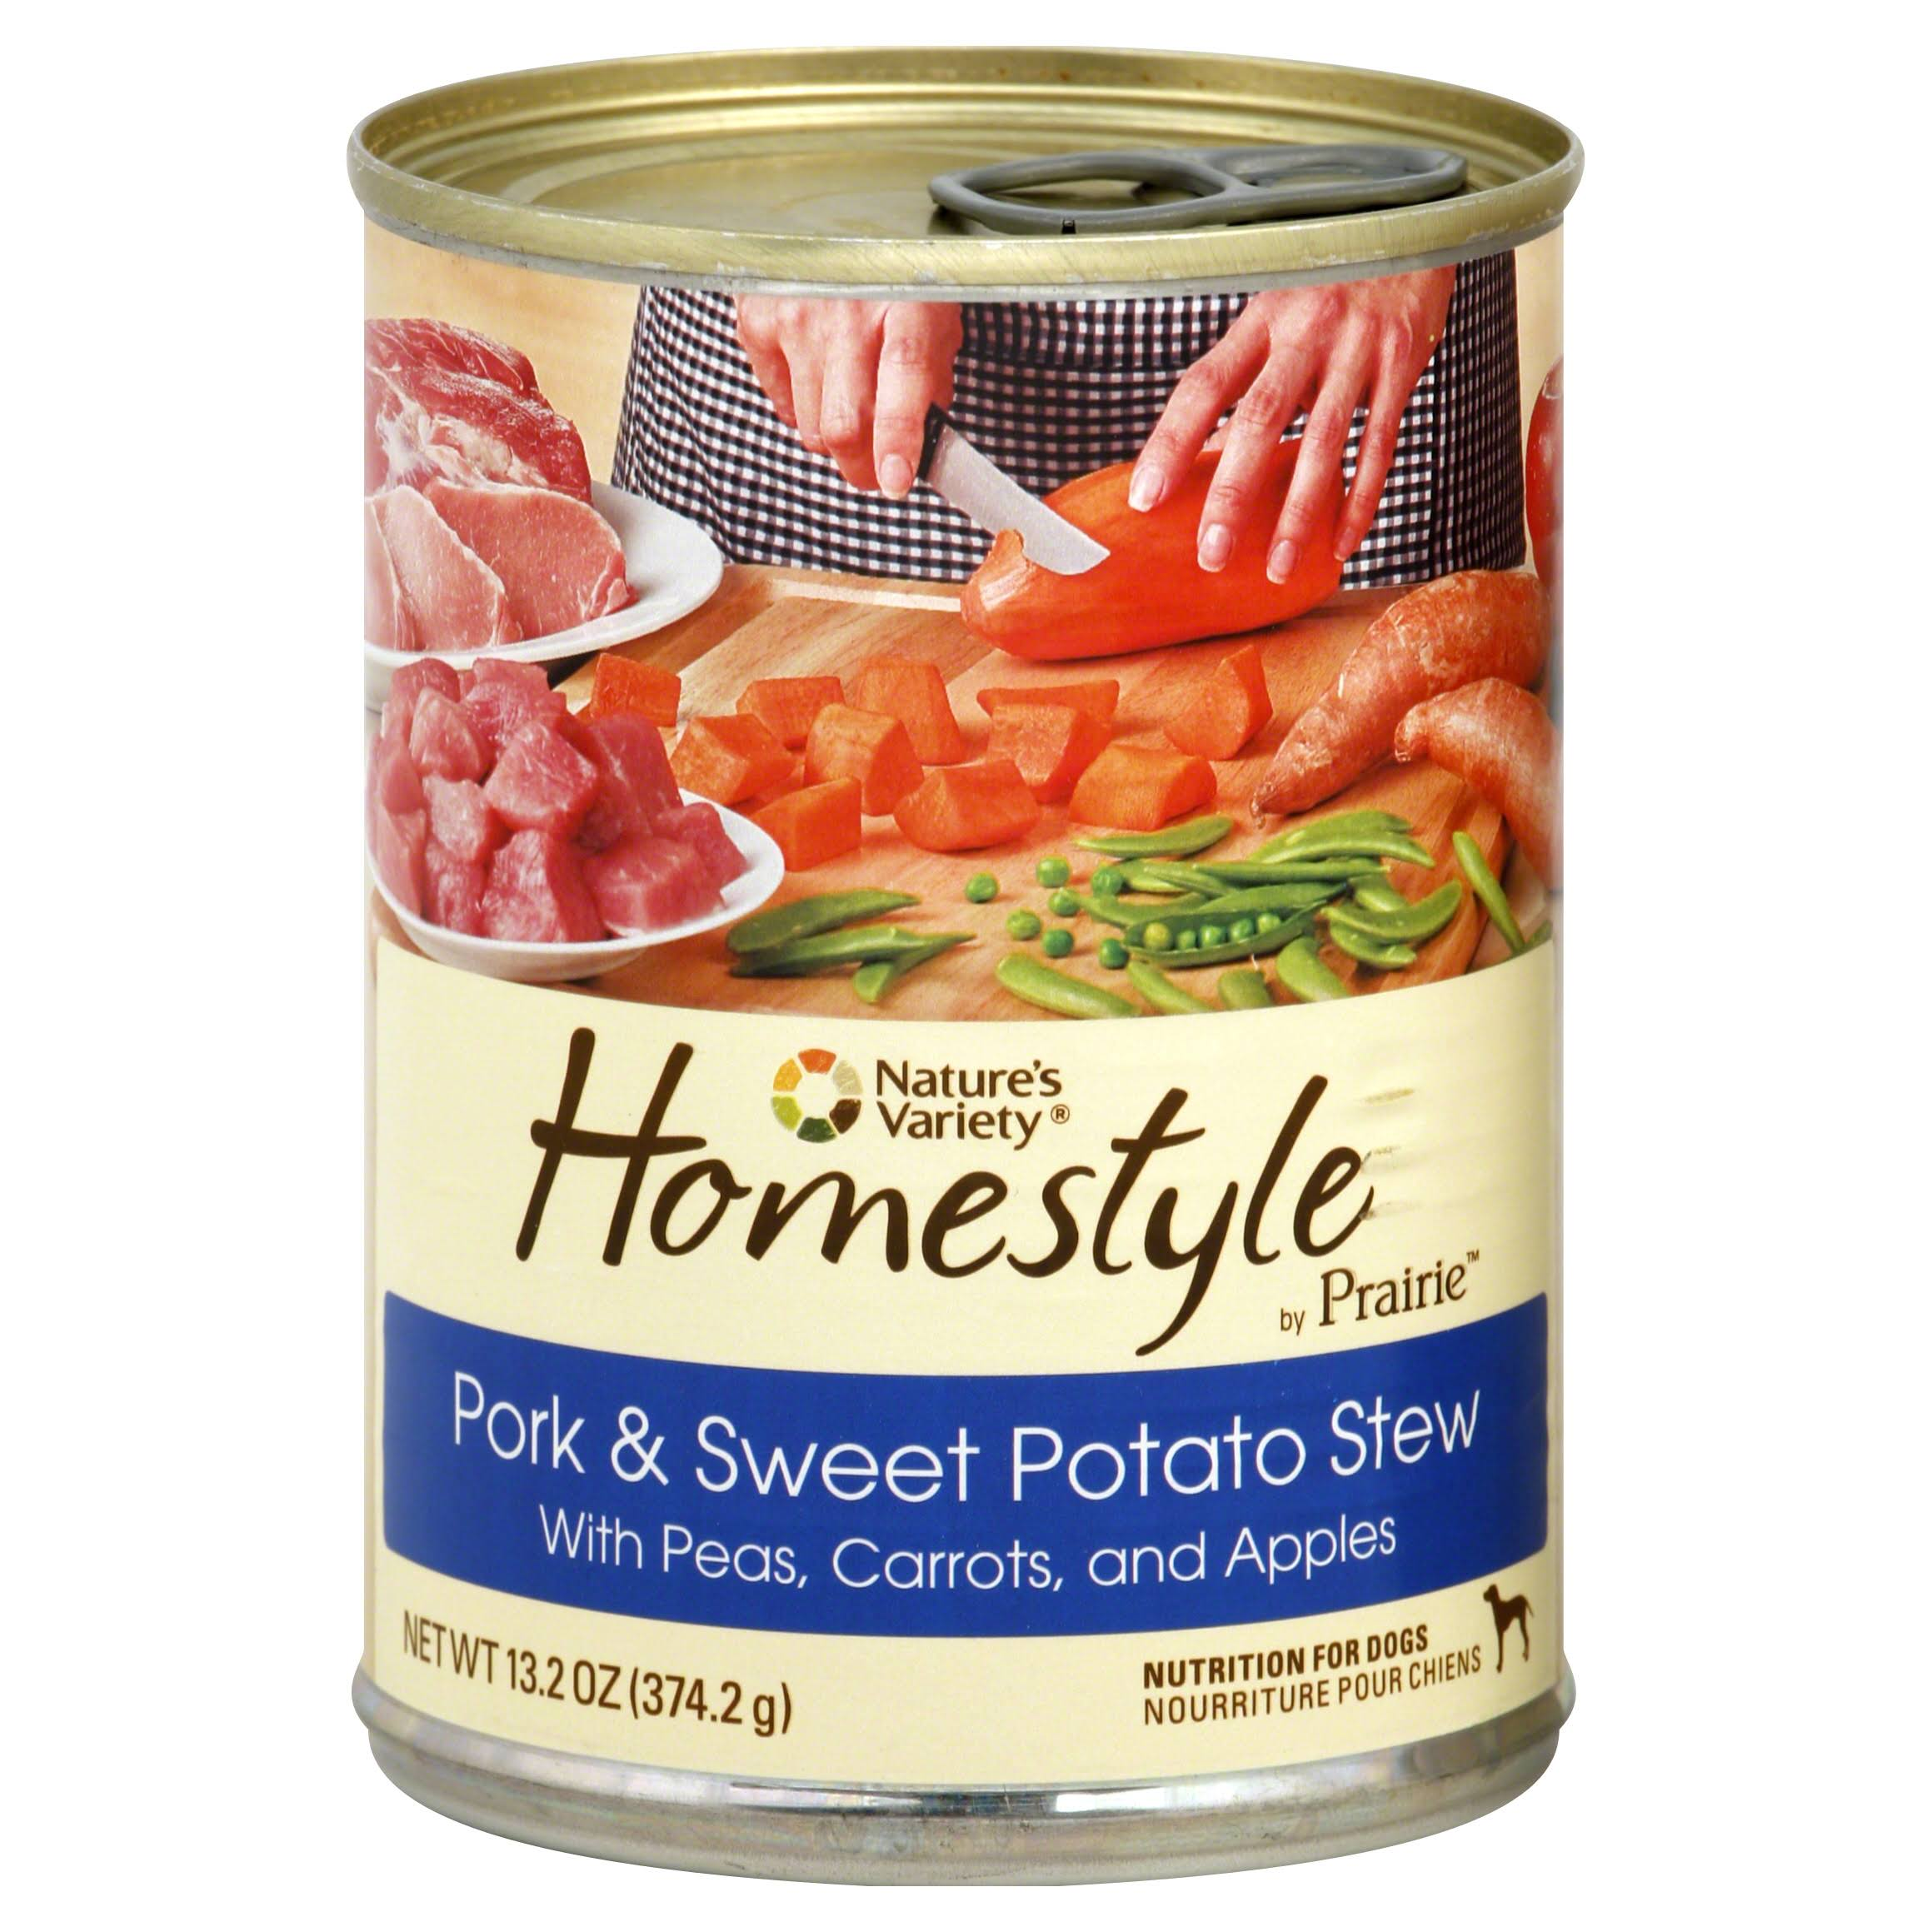 Nature's Variety Homestyle by Prairie Pork and Sweet Potato Stew Canned Dog Food - 13.2oz